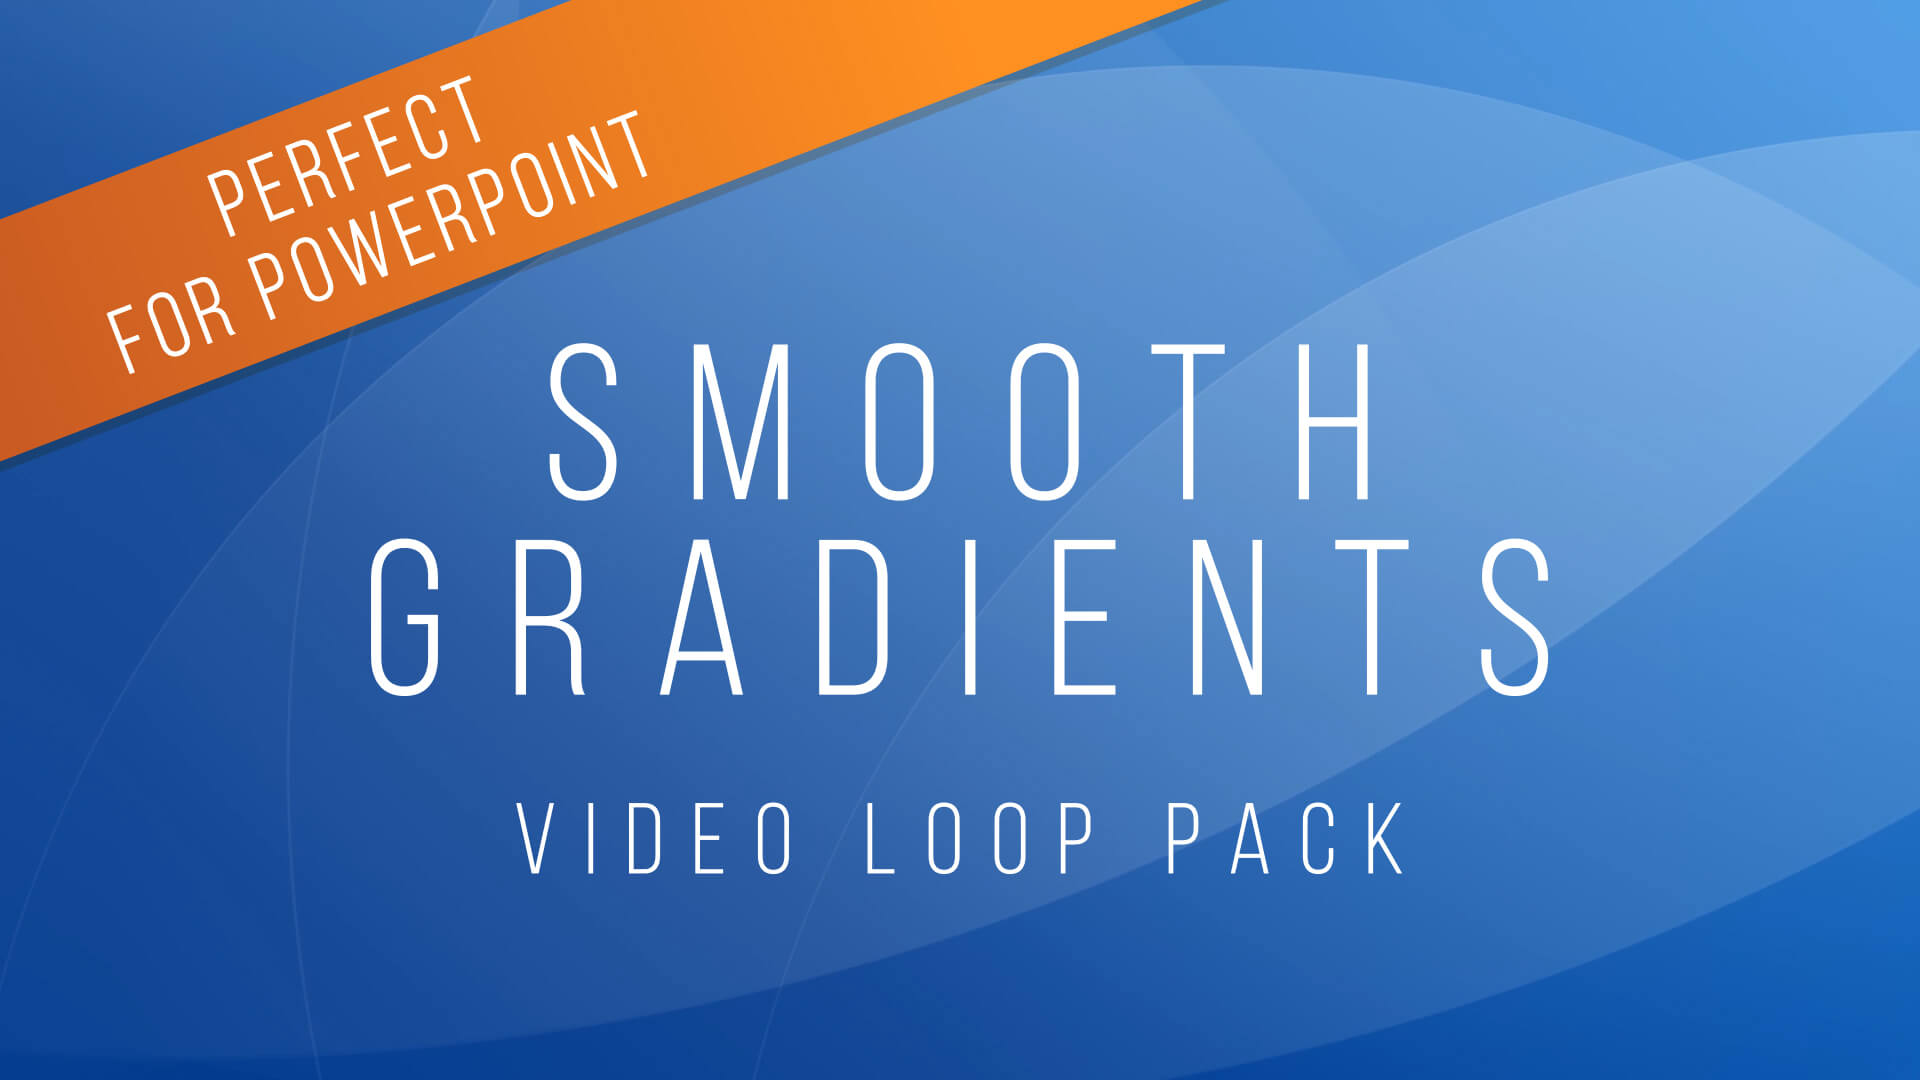 Smooth Gradient Animated Background Pack for Powerpoint